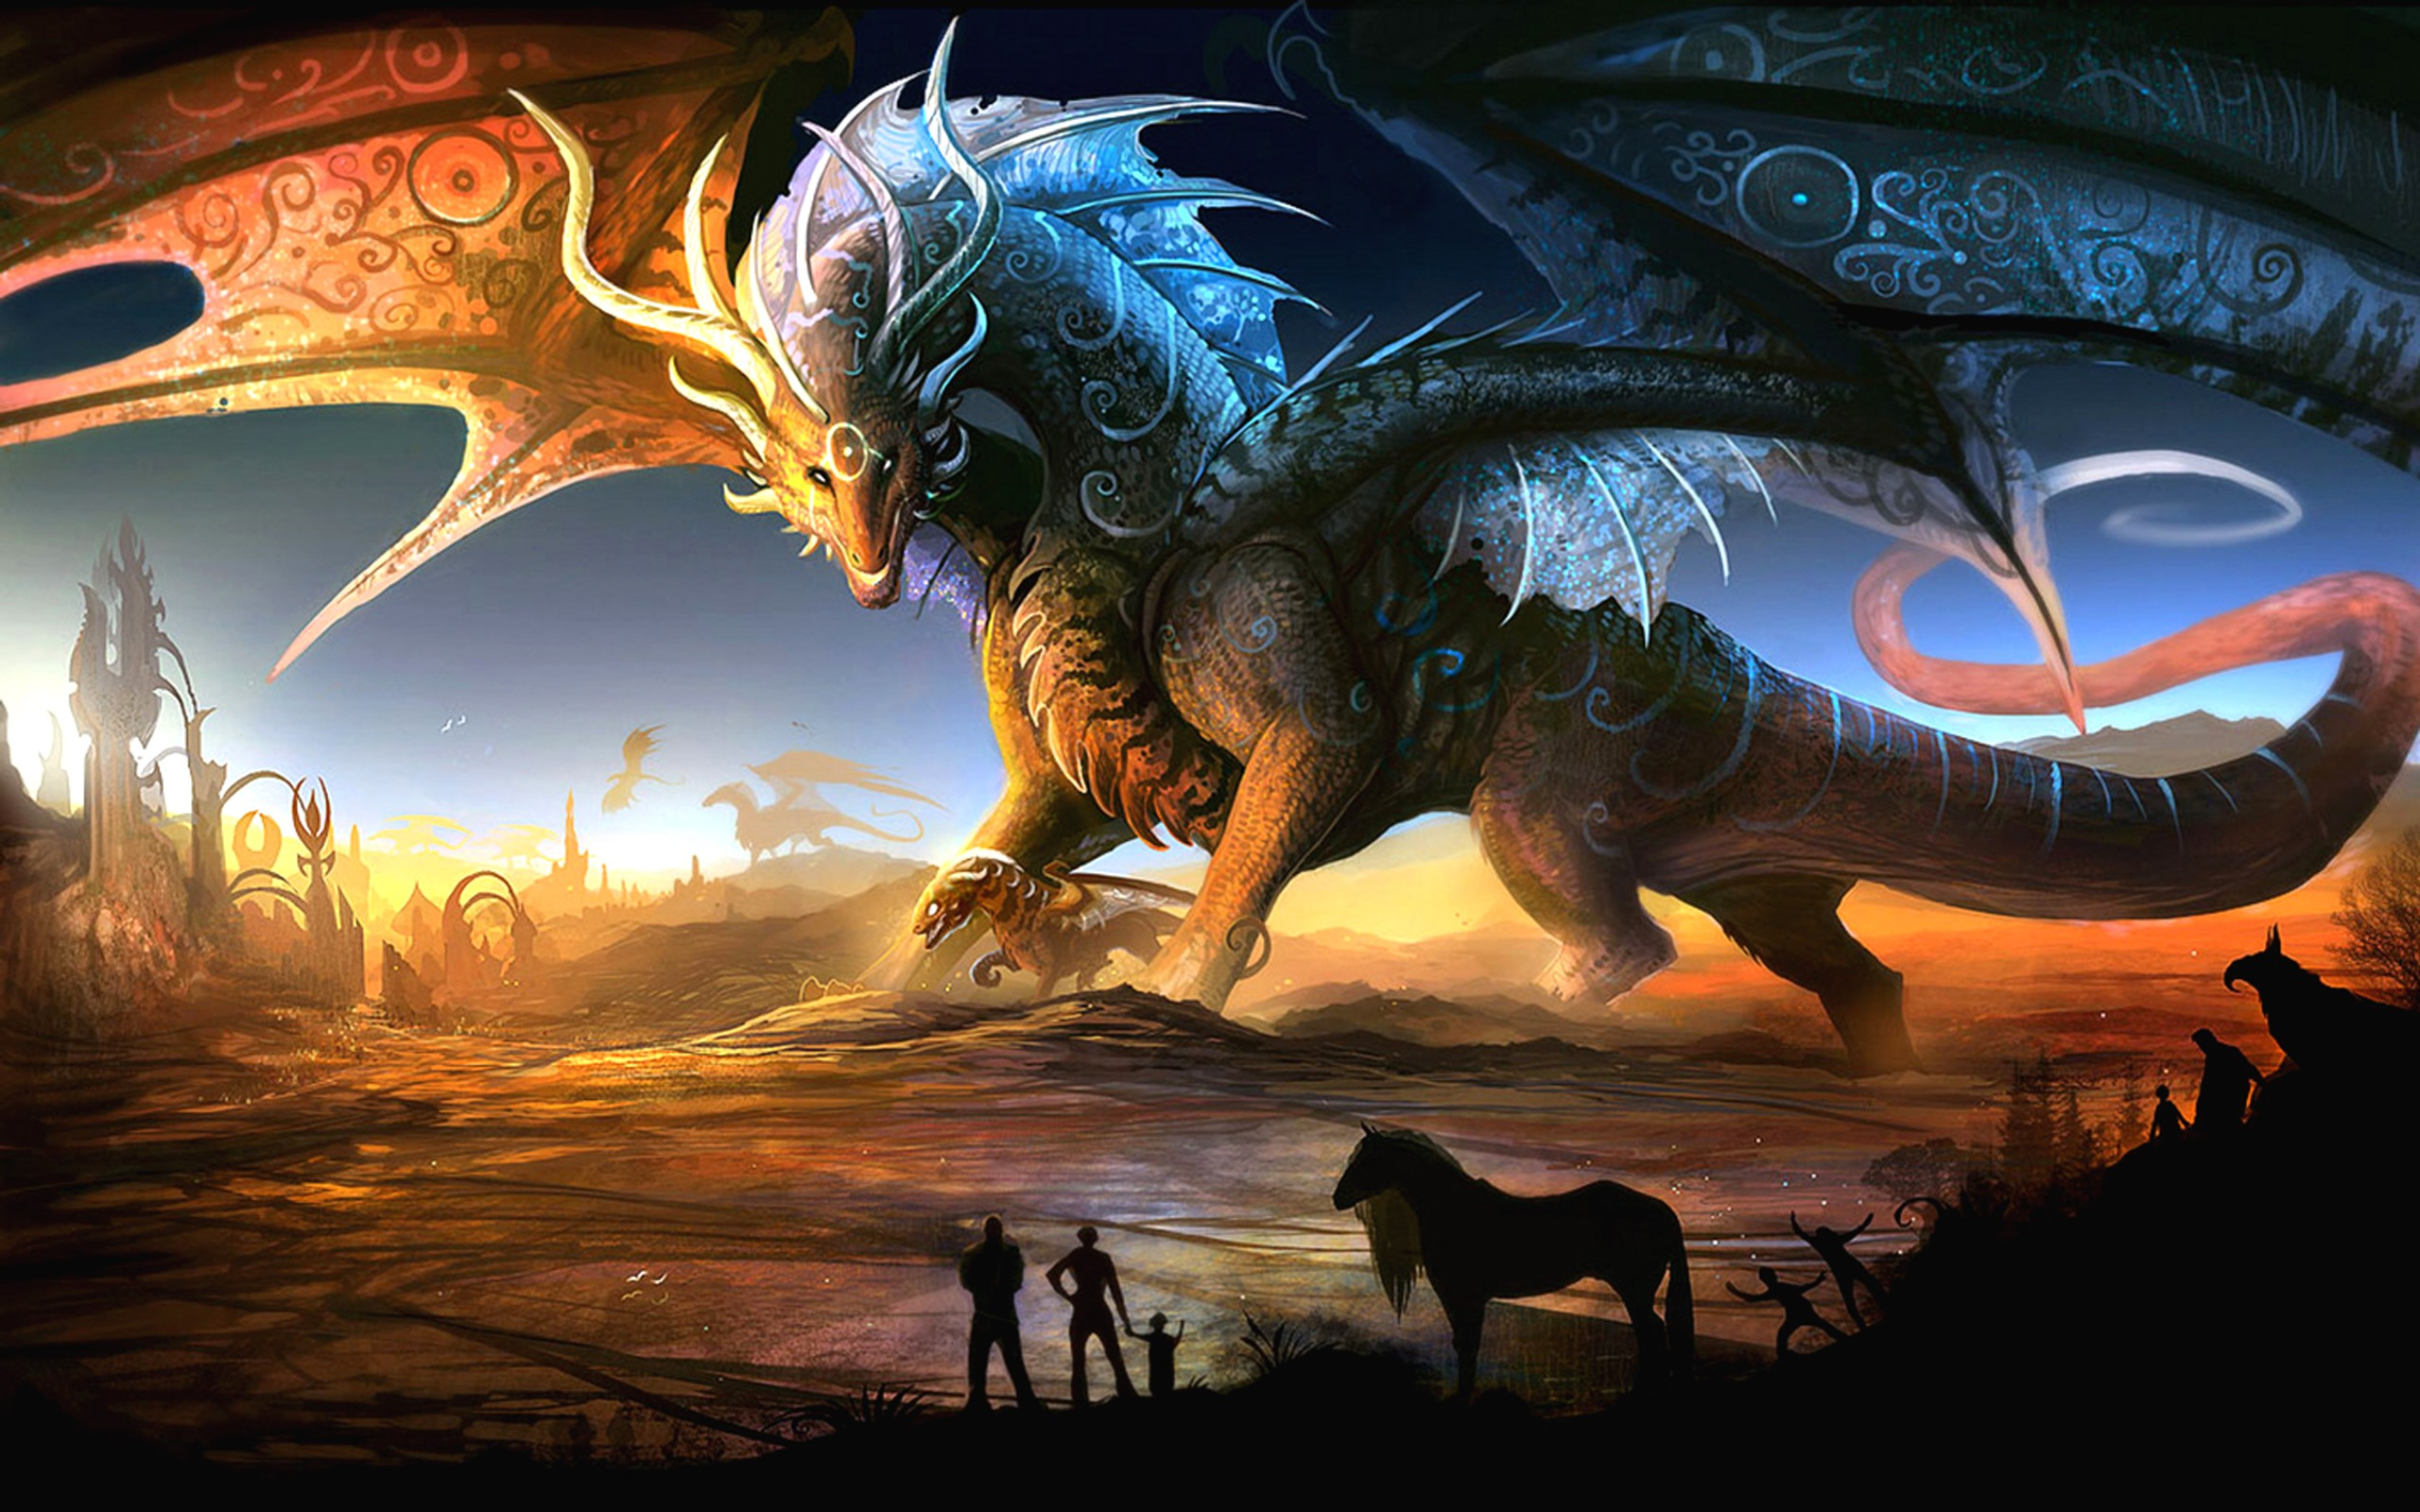 Dragon Fantasy Wallpaper Games